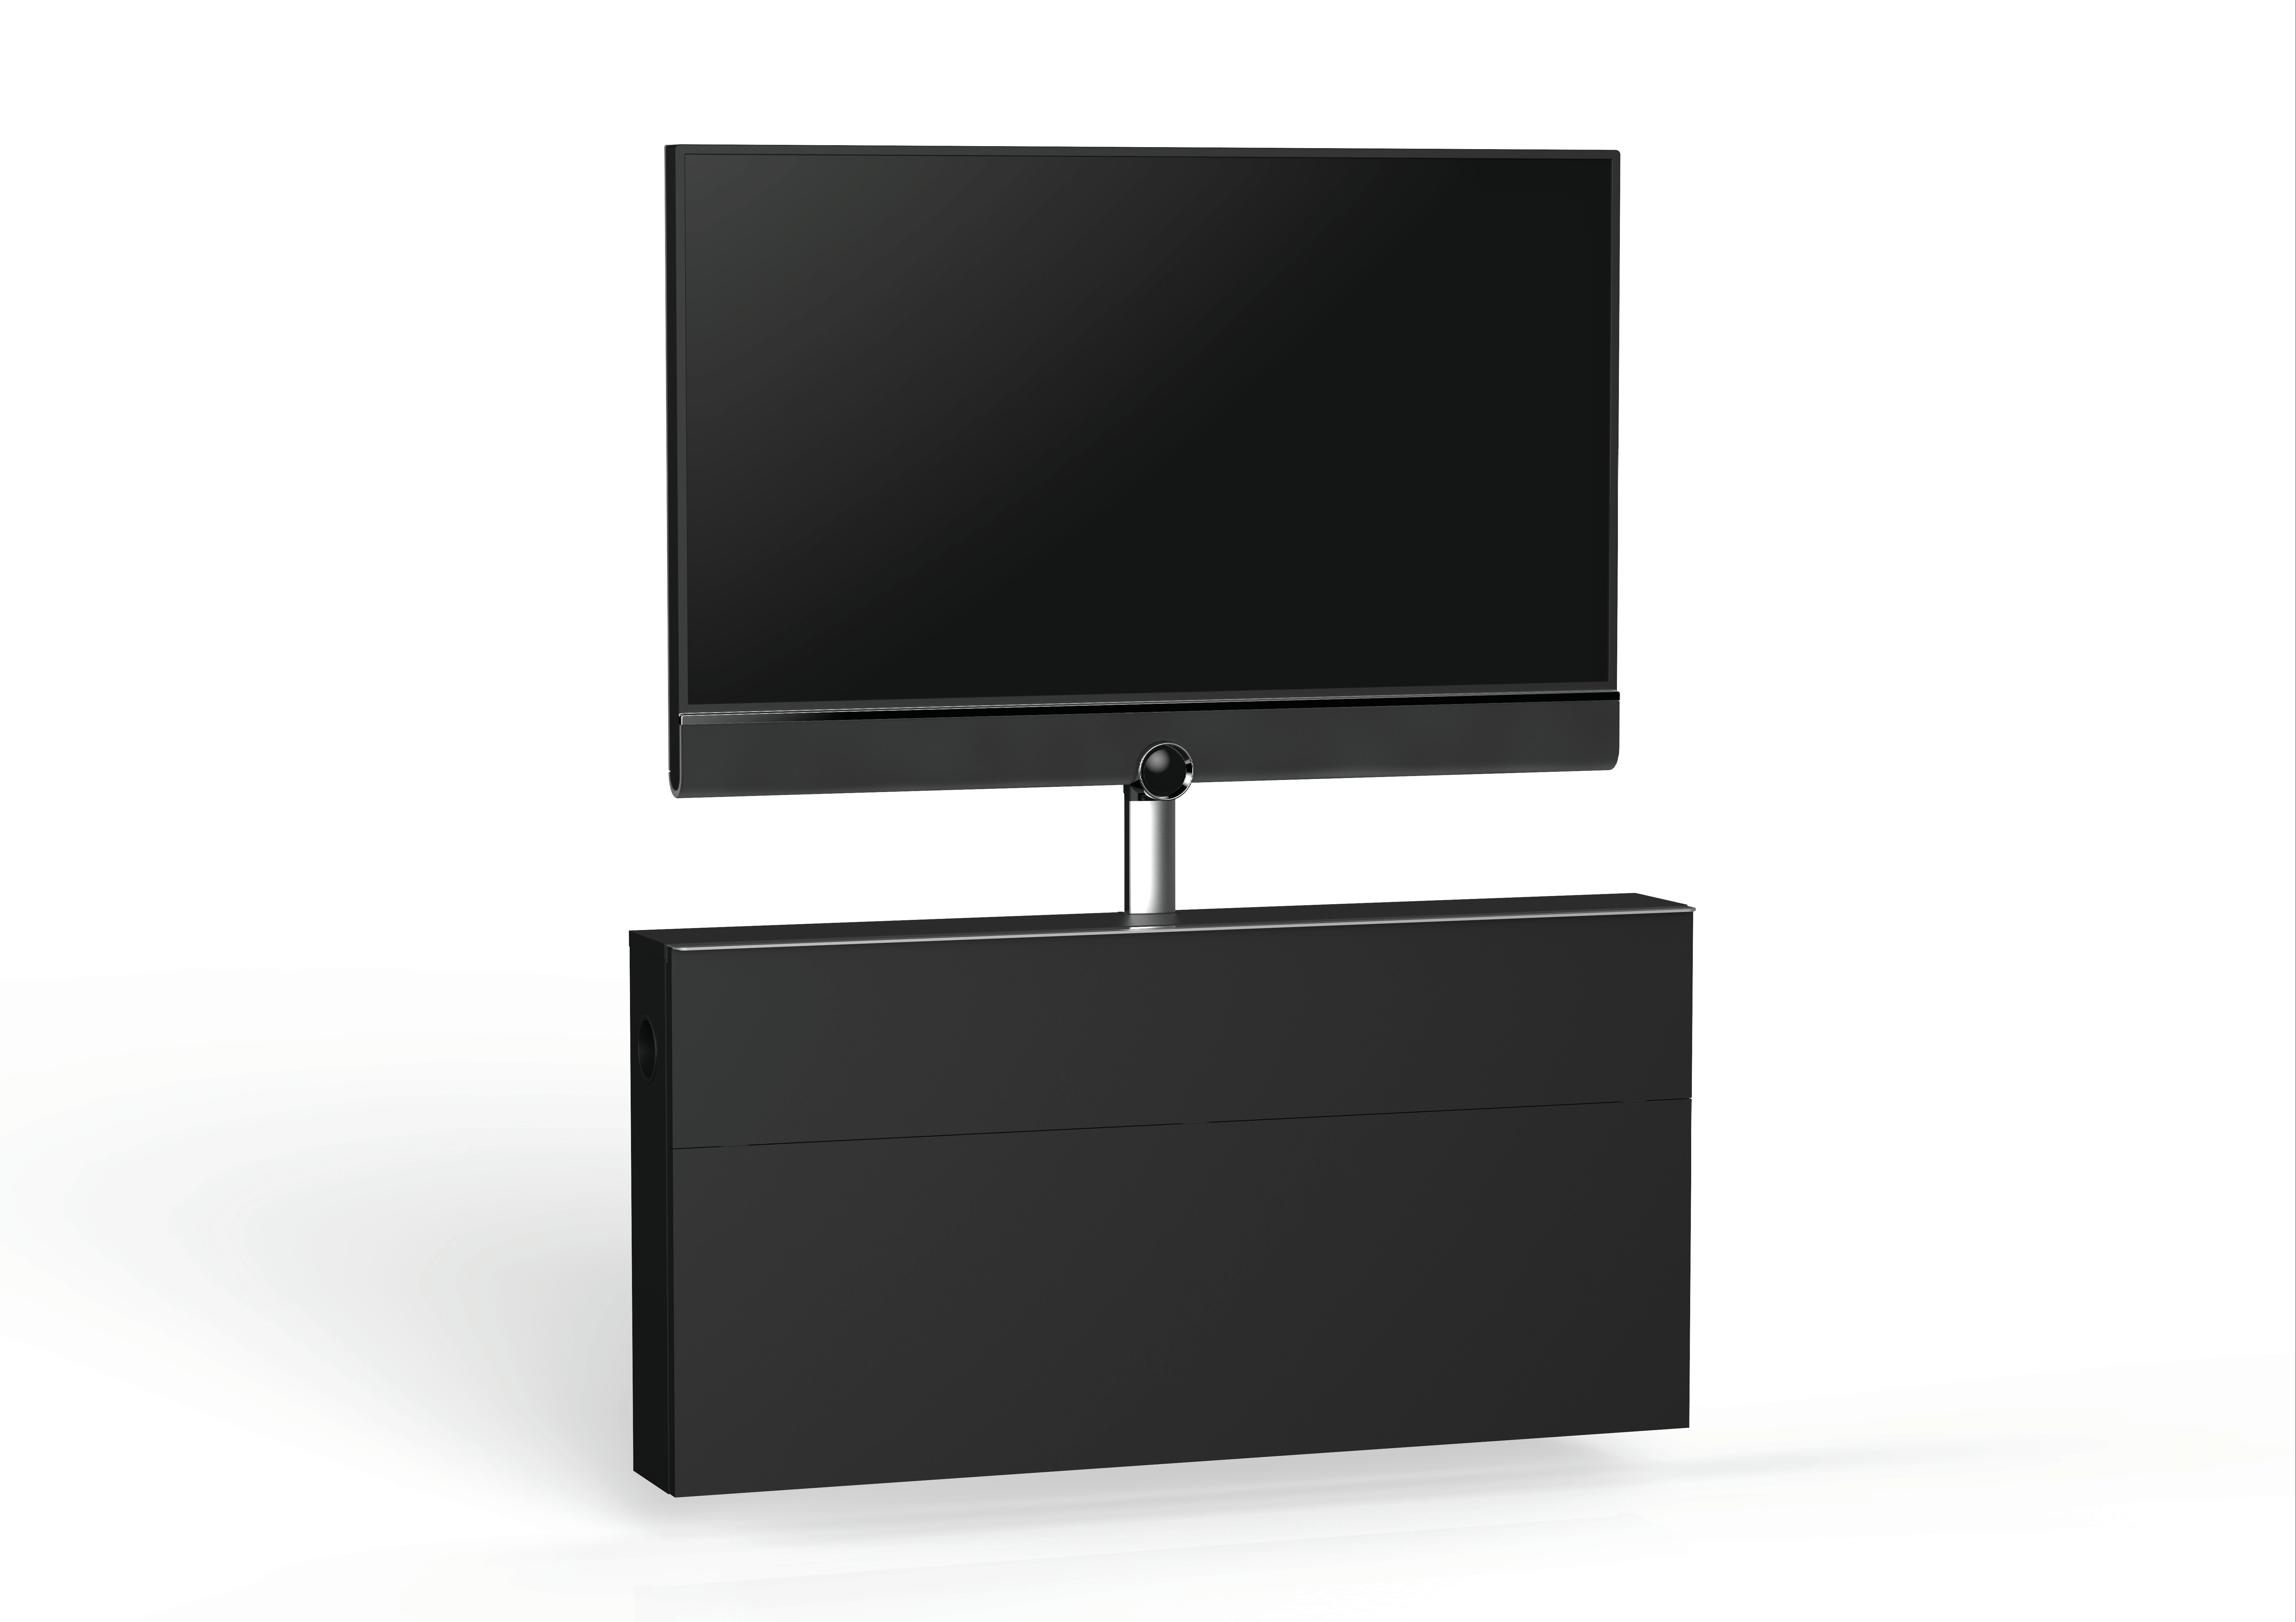 Widely Used Connected Essentials Ltd Slimline Space Saving Tv Stand For Tvs Up Regarding Slimline Tv Stands (View 14 of 20)